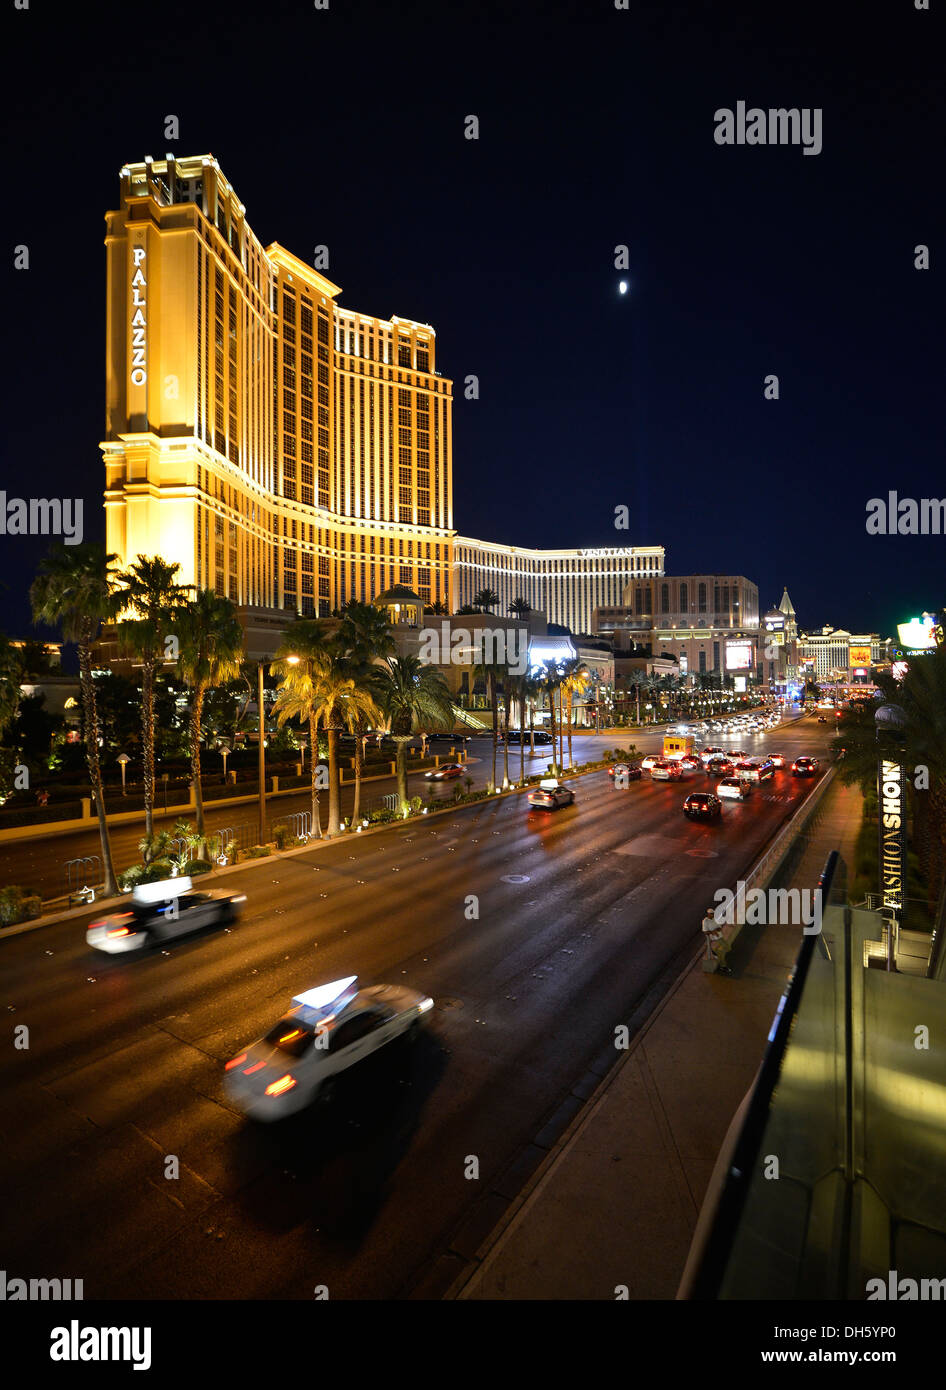 Palazzo luxury hotel and casino at night las vegas nevada united states of america usa publicground